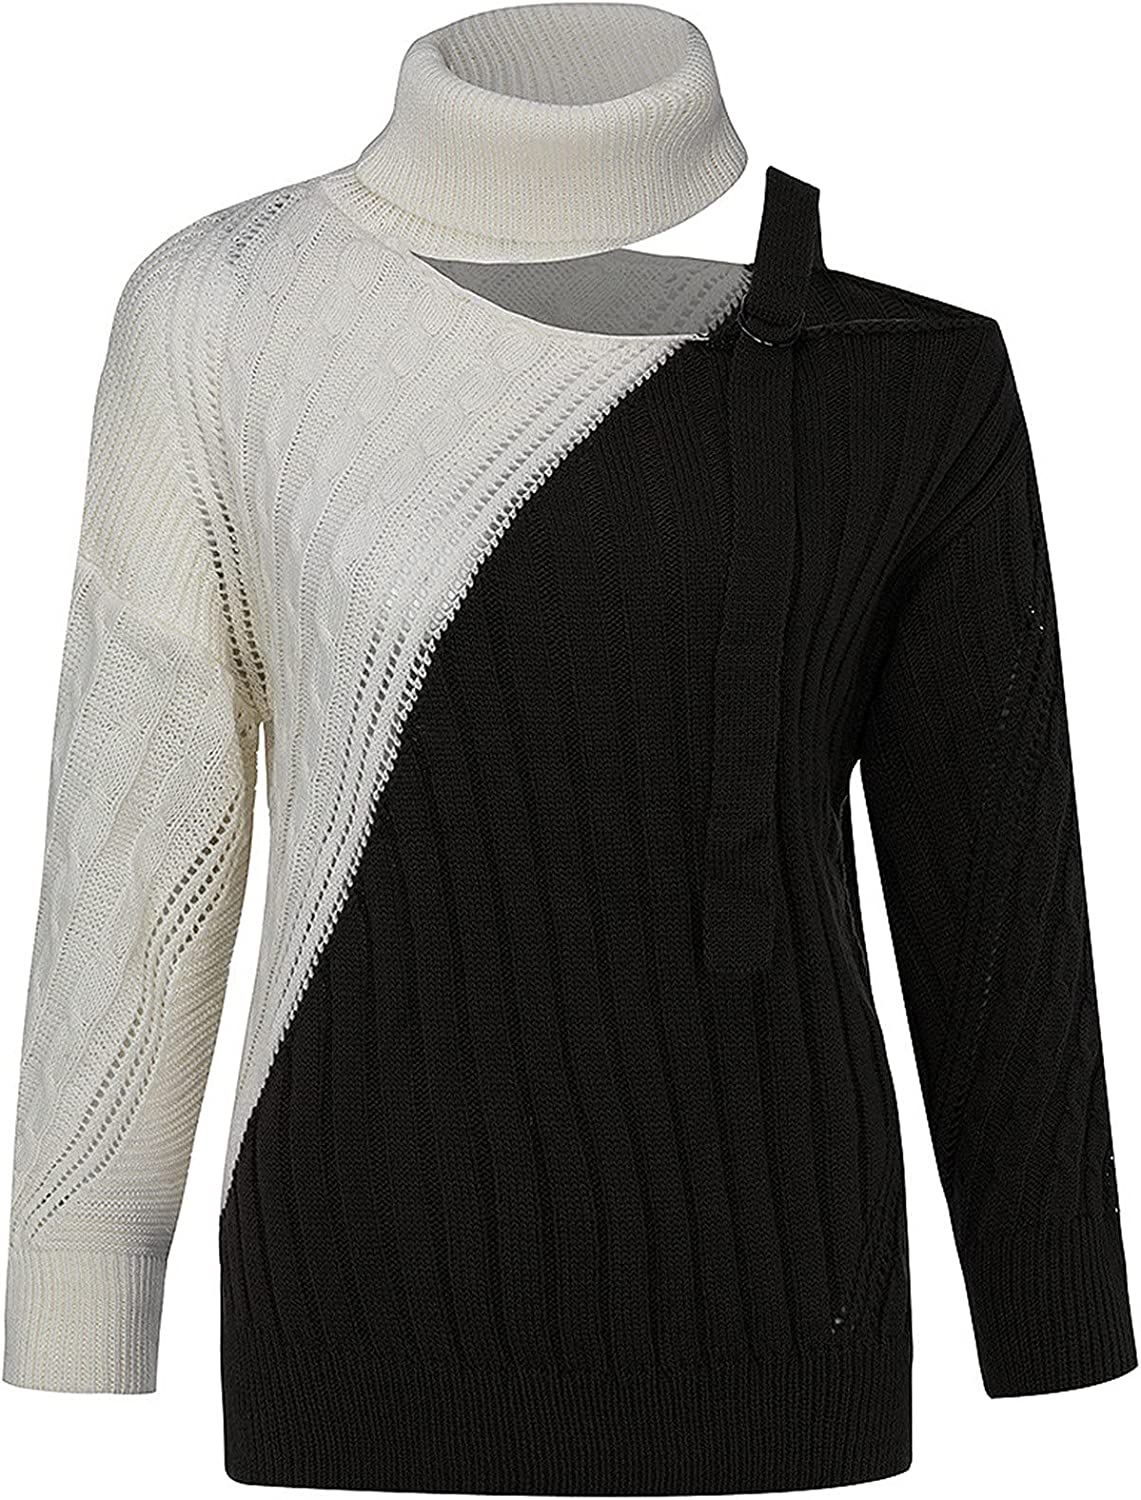 Womens Turtleneck Cold Shoulder Sweaters Contrast Color Patchwork Knitted Pullover Jumper Wool Plus Size Tops